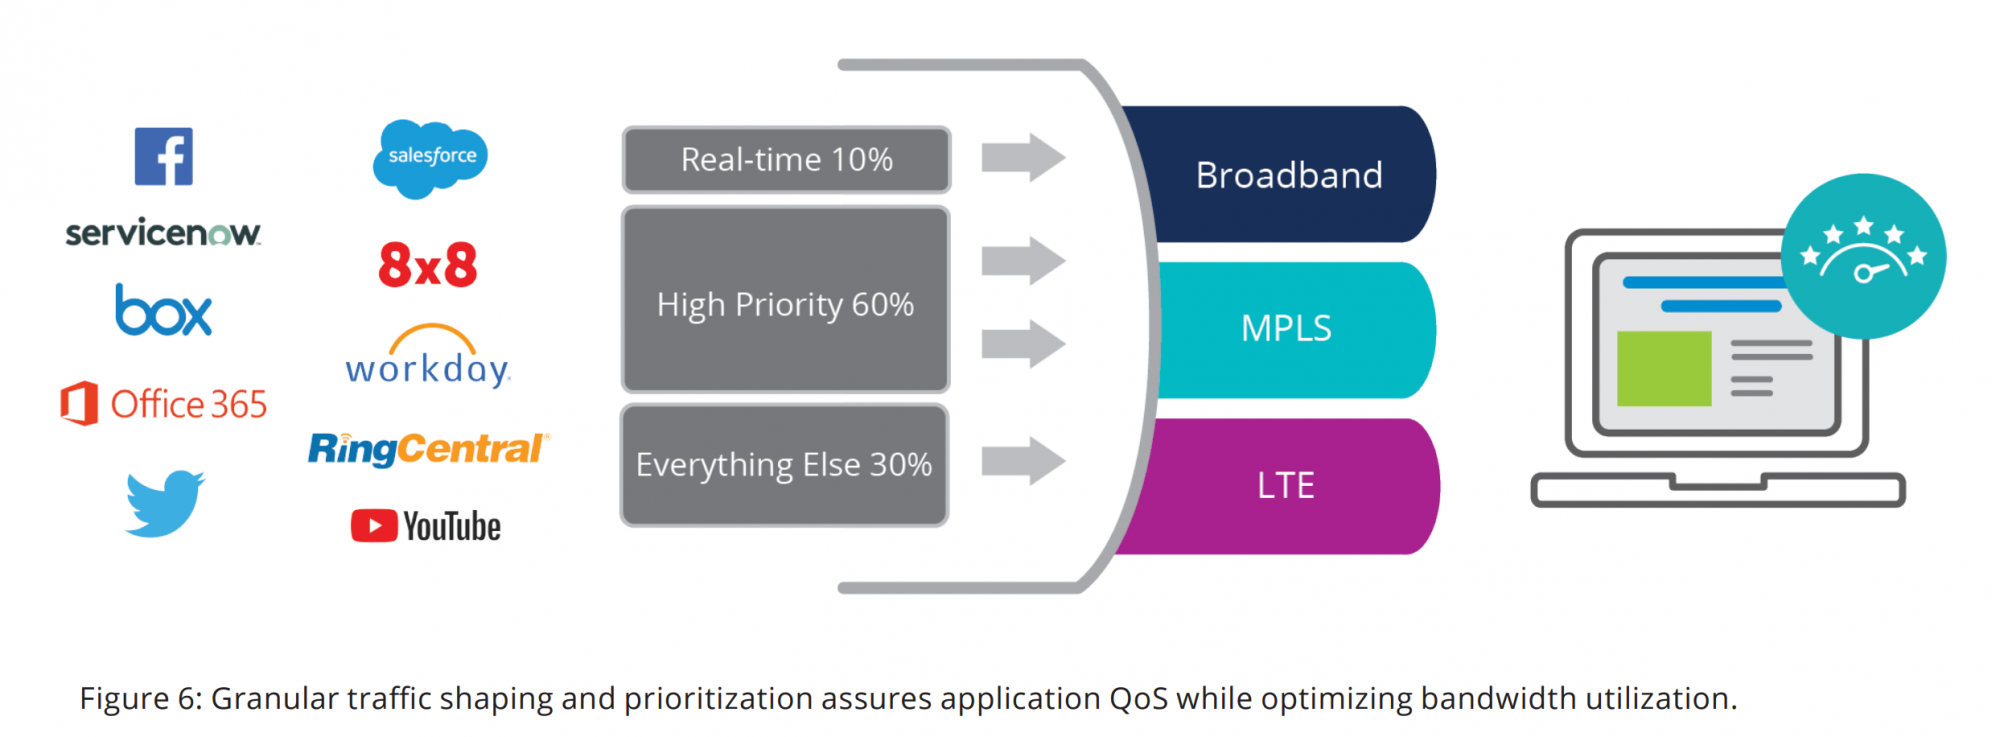 Figure 6: Granular traffic shaping and prioritization assures application QoS while optimizing bandwidth utilization.